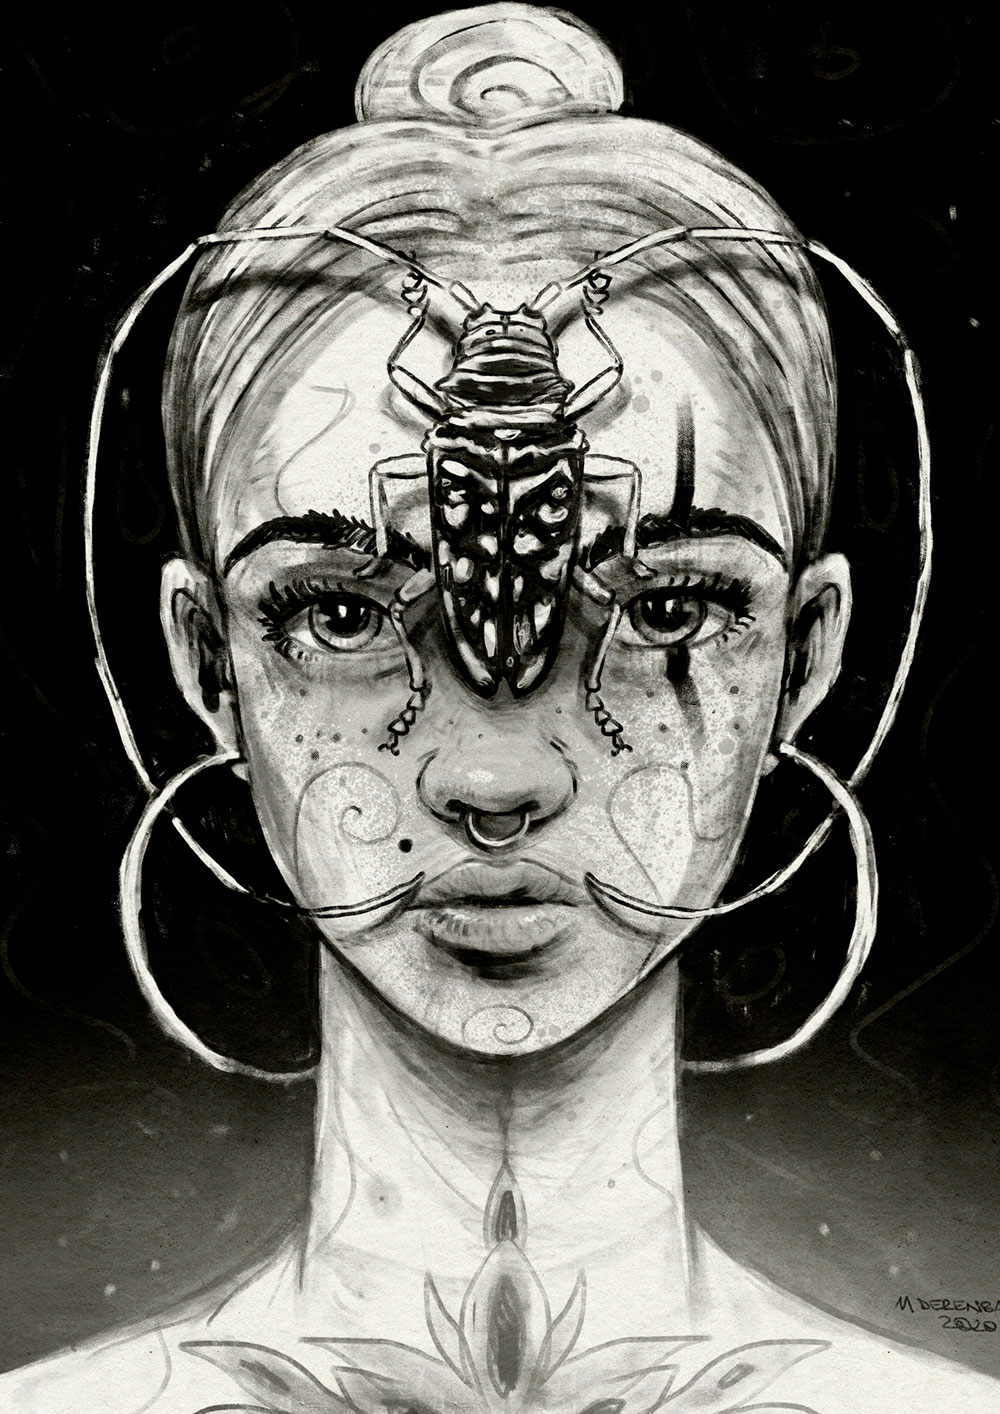 Digital artwork titled 'Beetle'. Portrait of a woman with a beetle with long feelers on her forehead - by Matthias Derenbach